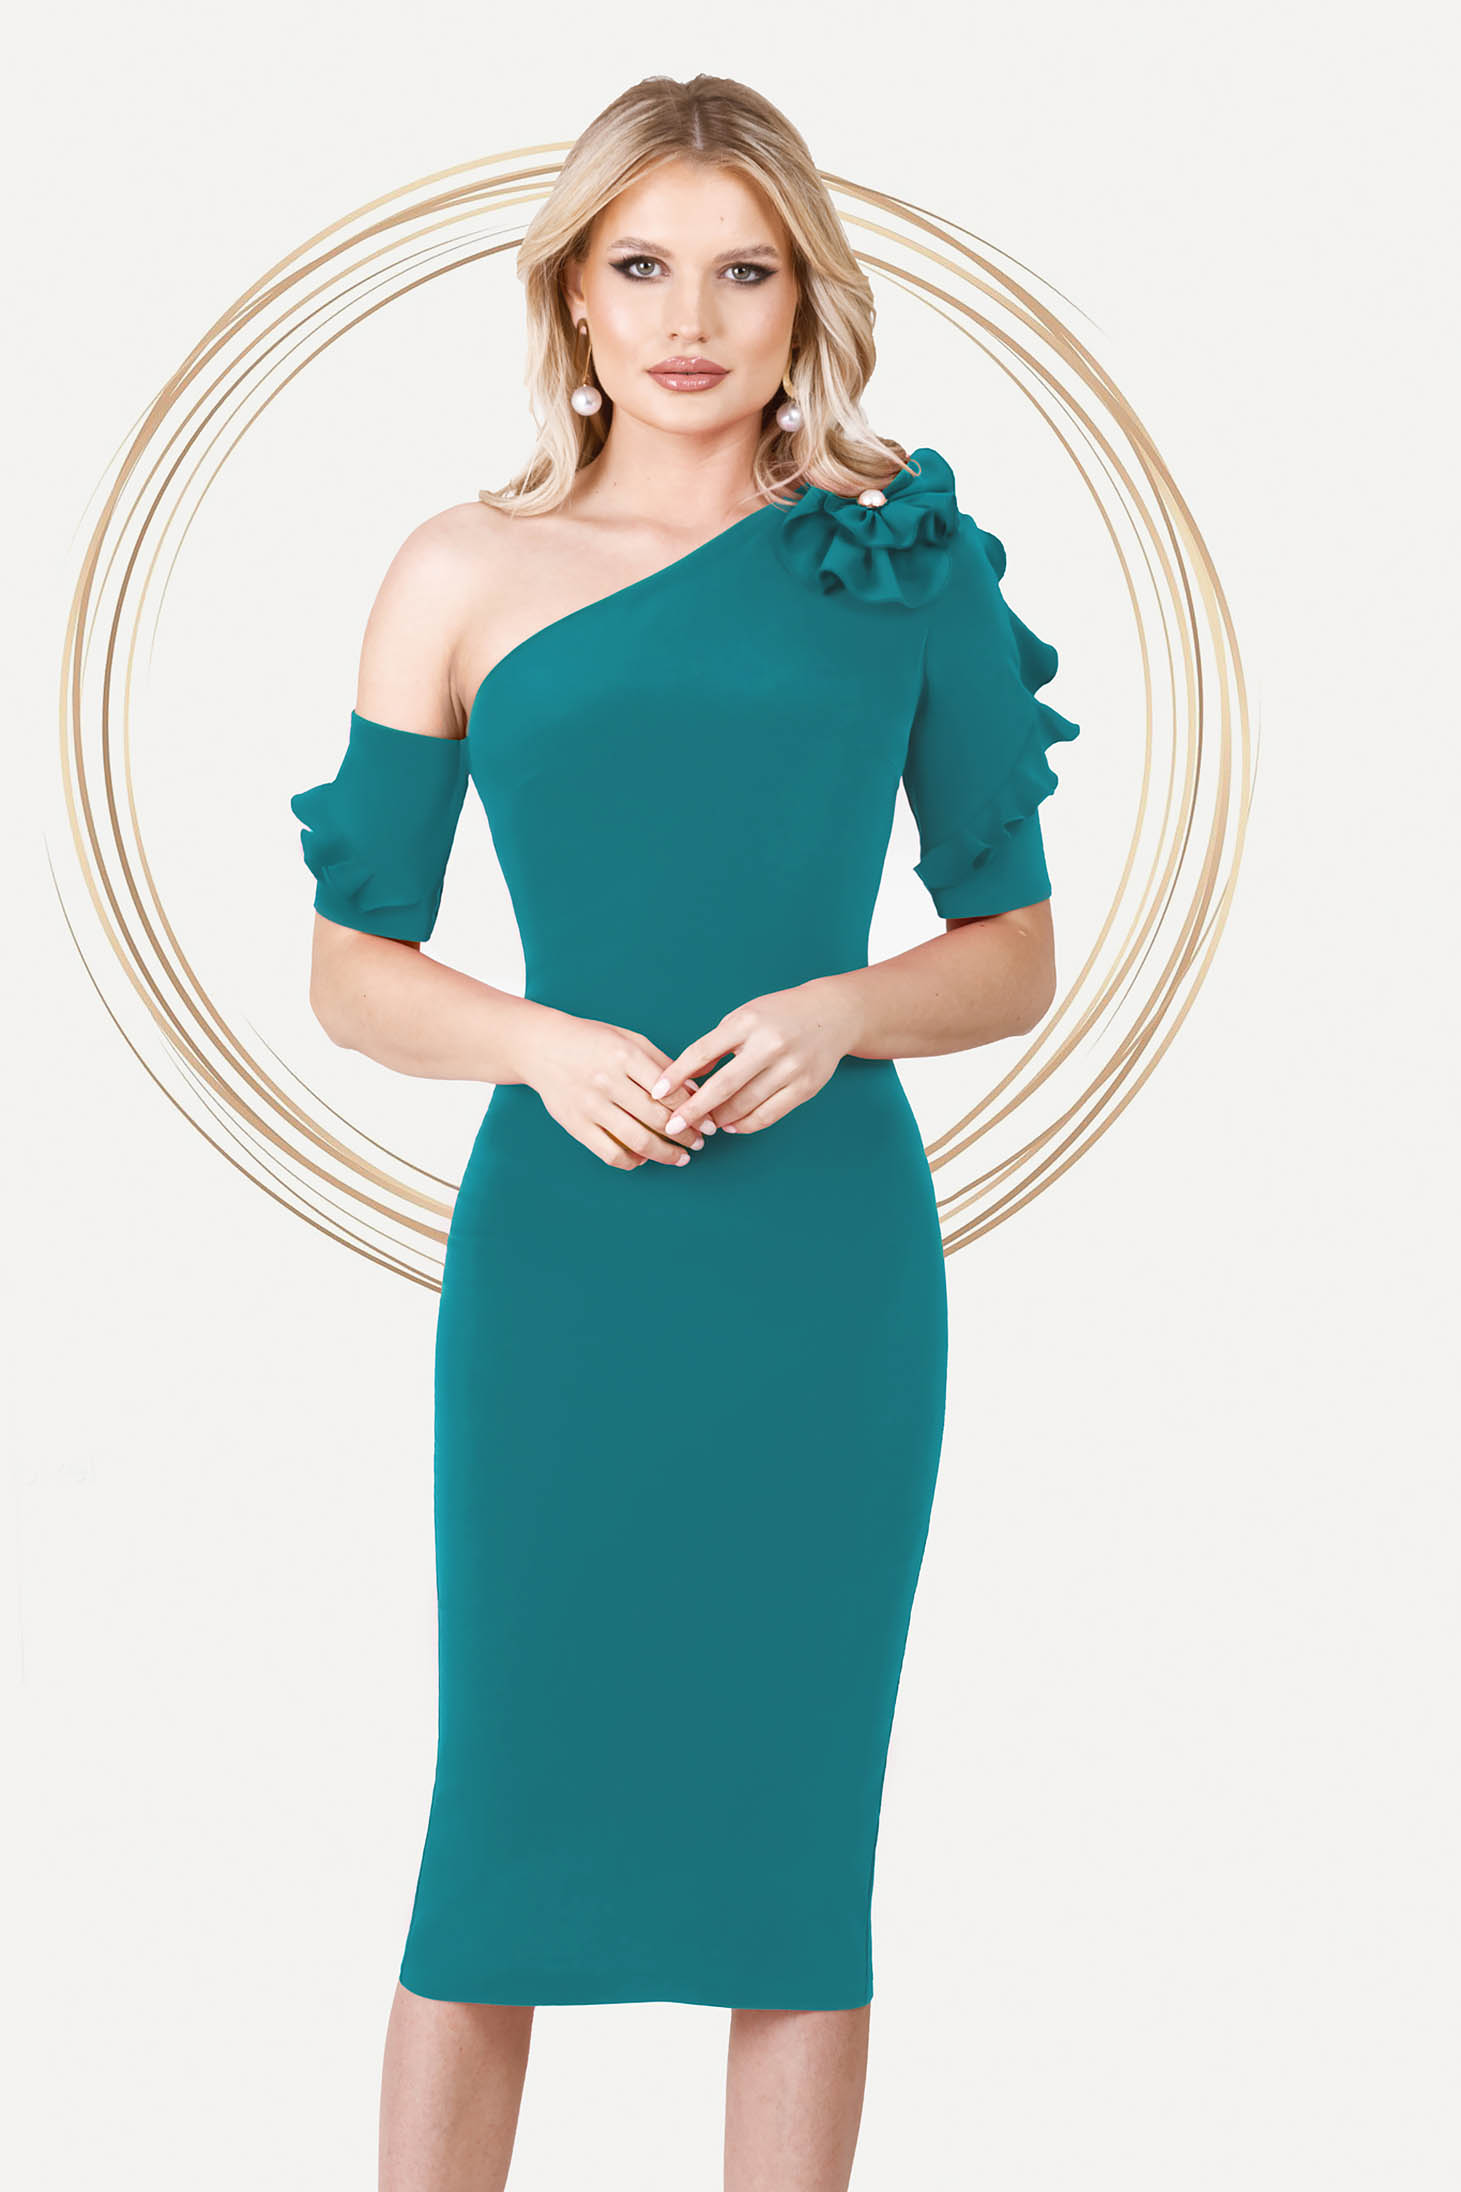 Turquoise dress occasional midi pencil one shoulder with ruffled sleeves